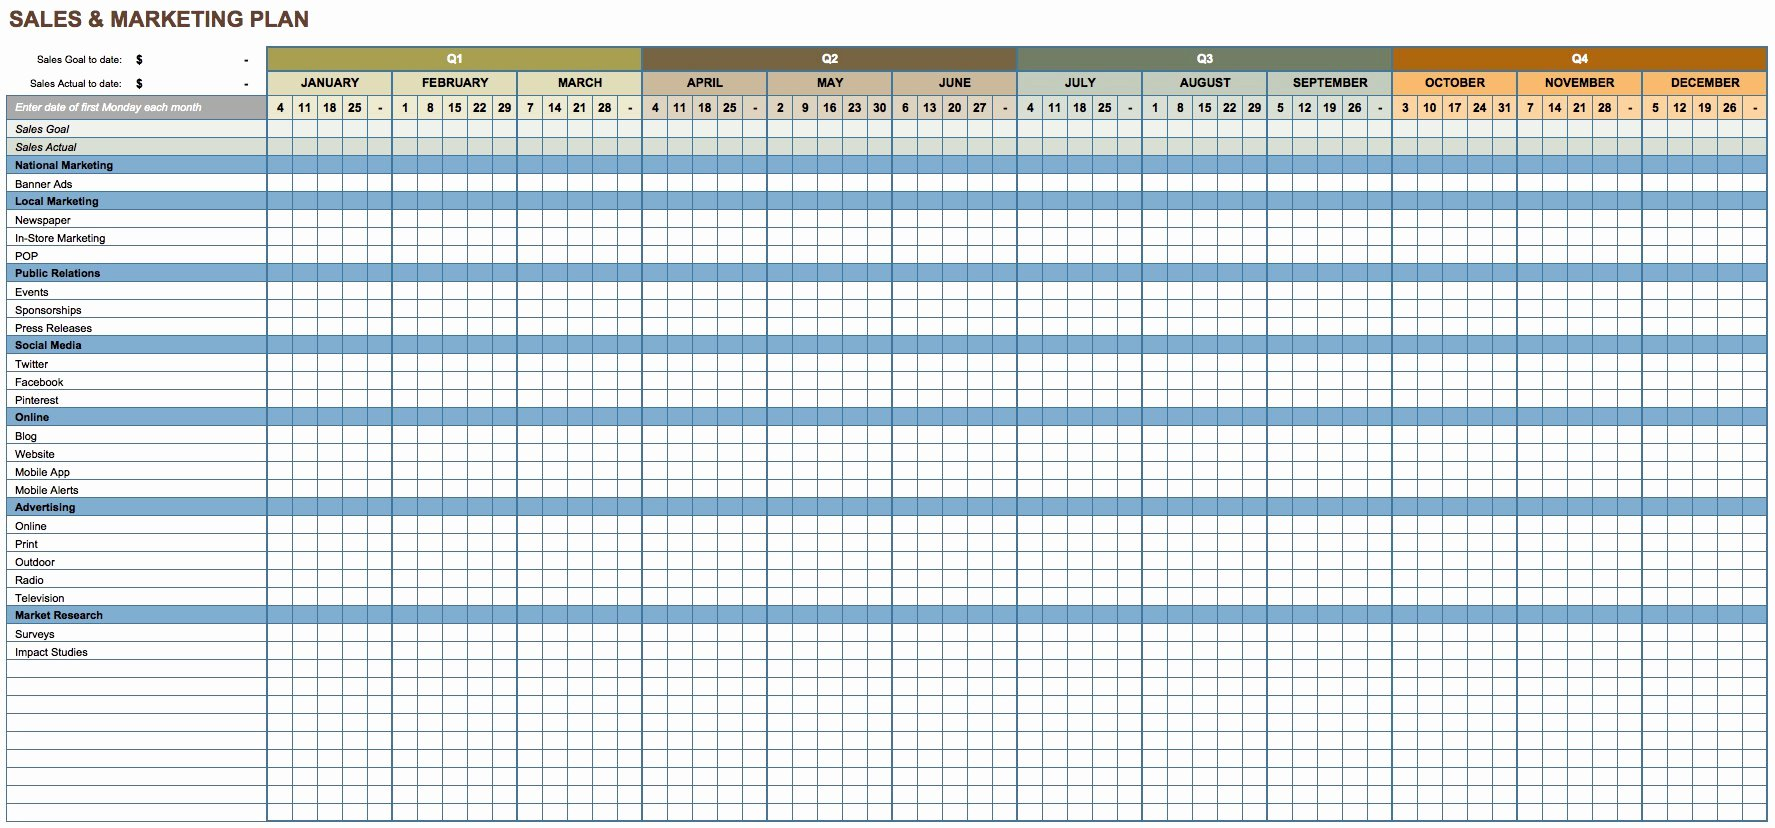 Sales and Marketing Plan Template Awesome Free Marketing Plan Templates for Excel Smartsheet